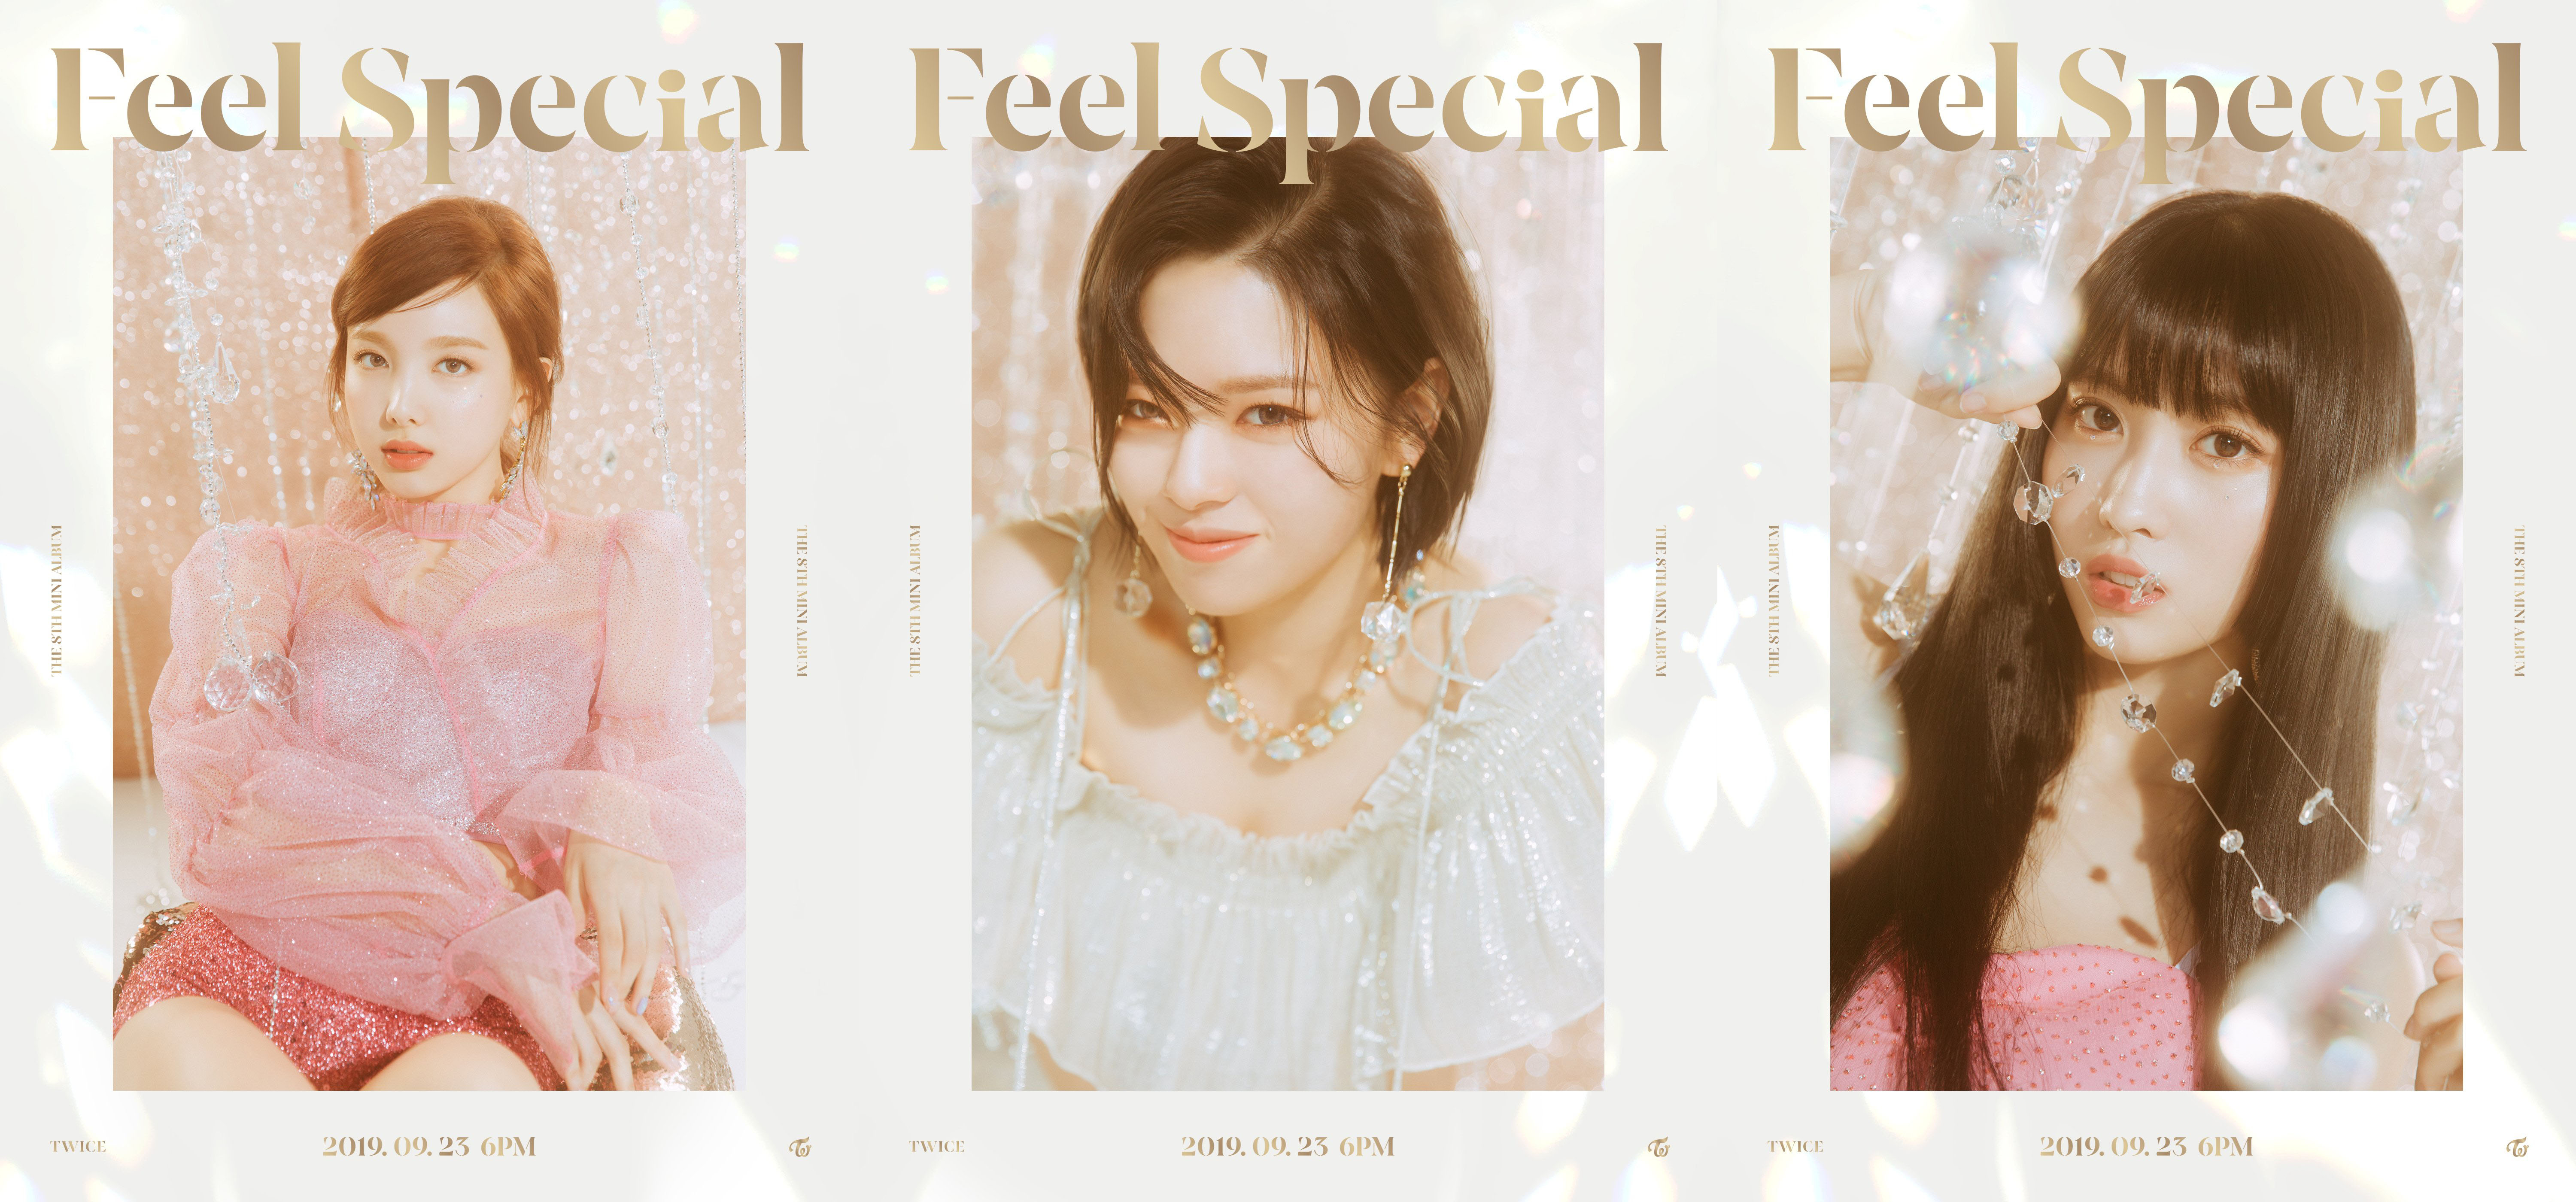 Twice Feel Special Nayeon Jeongyeon Momo Teaser Photos (HD/HR)